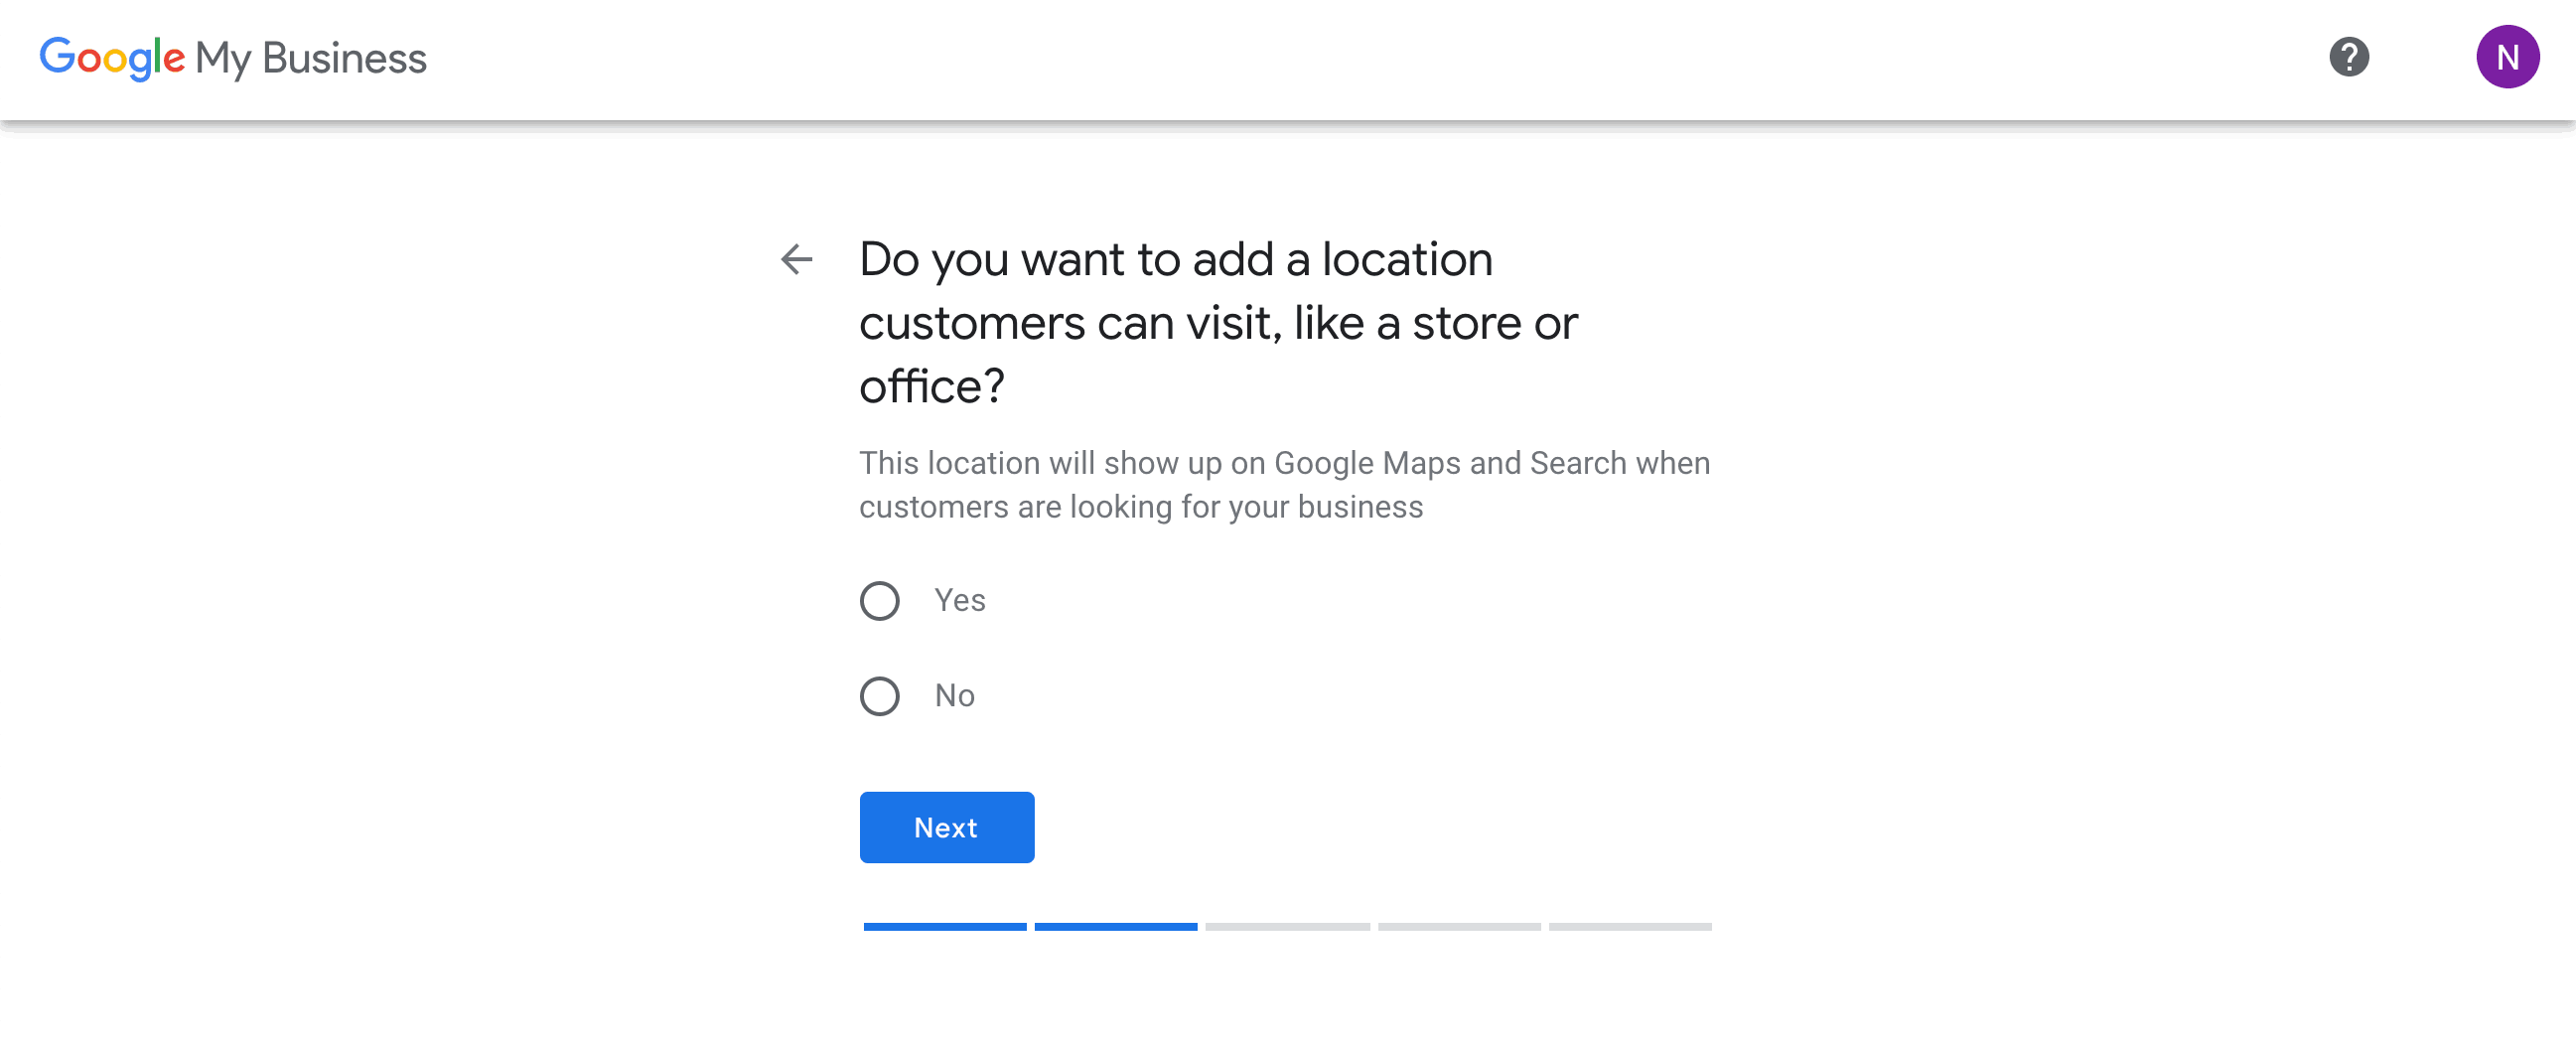 Google My Business - Location